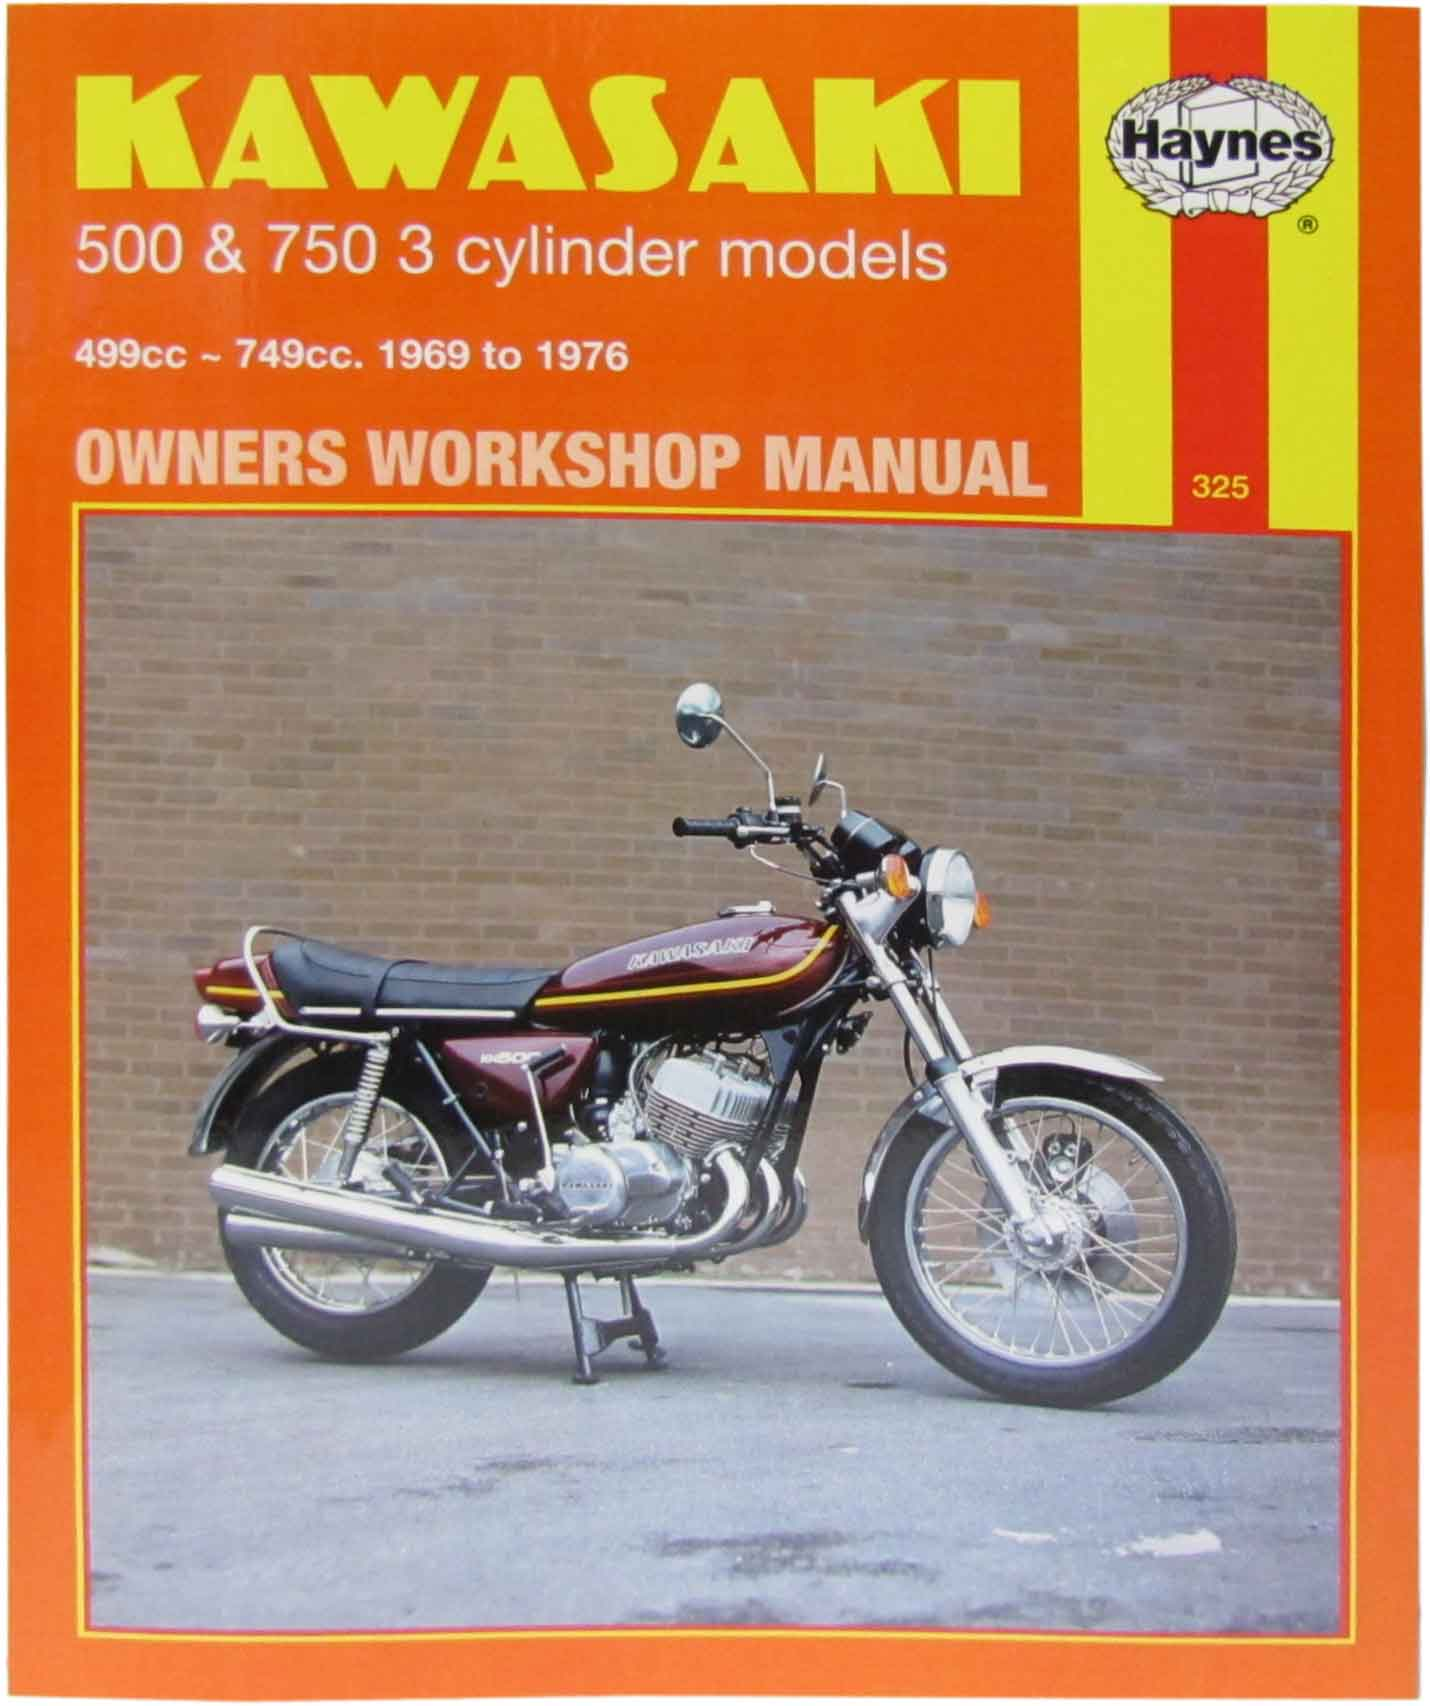 1978 z650 wiring diagram vl 1500 kawasaki kh 250 service manual | 2019 ebook library